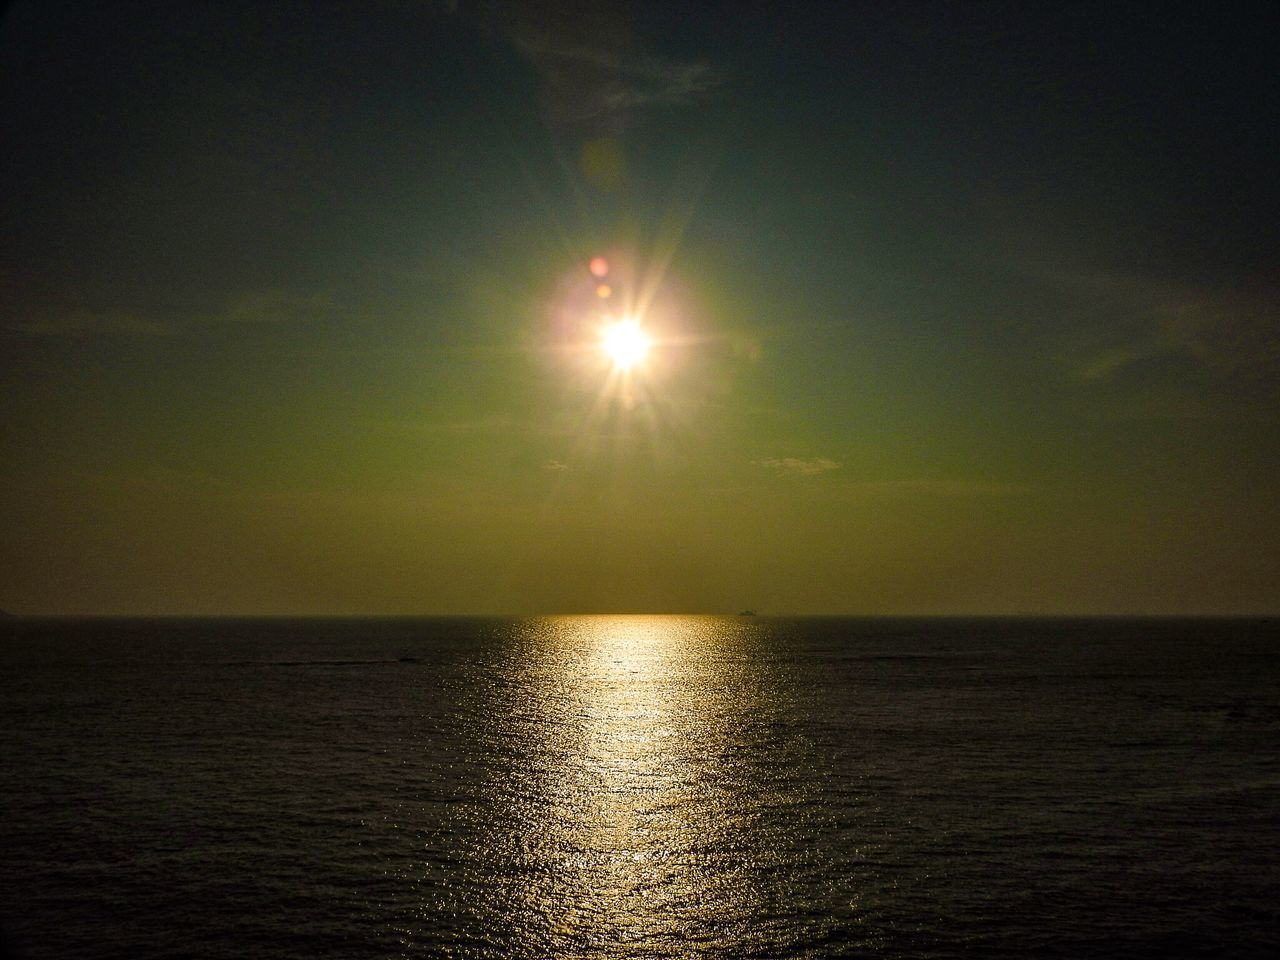 sun, sea, sunset, scenics, nature, beauty in nature, tranquility, tranquil scene, water, reflection, horizon over water, sunlight, no people, sky, outdoors, waterfront, day